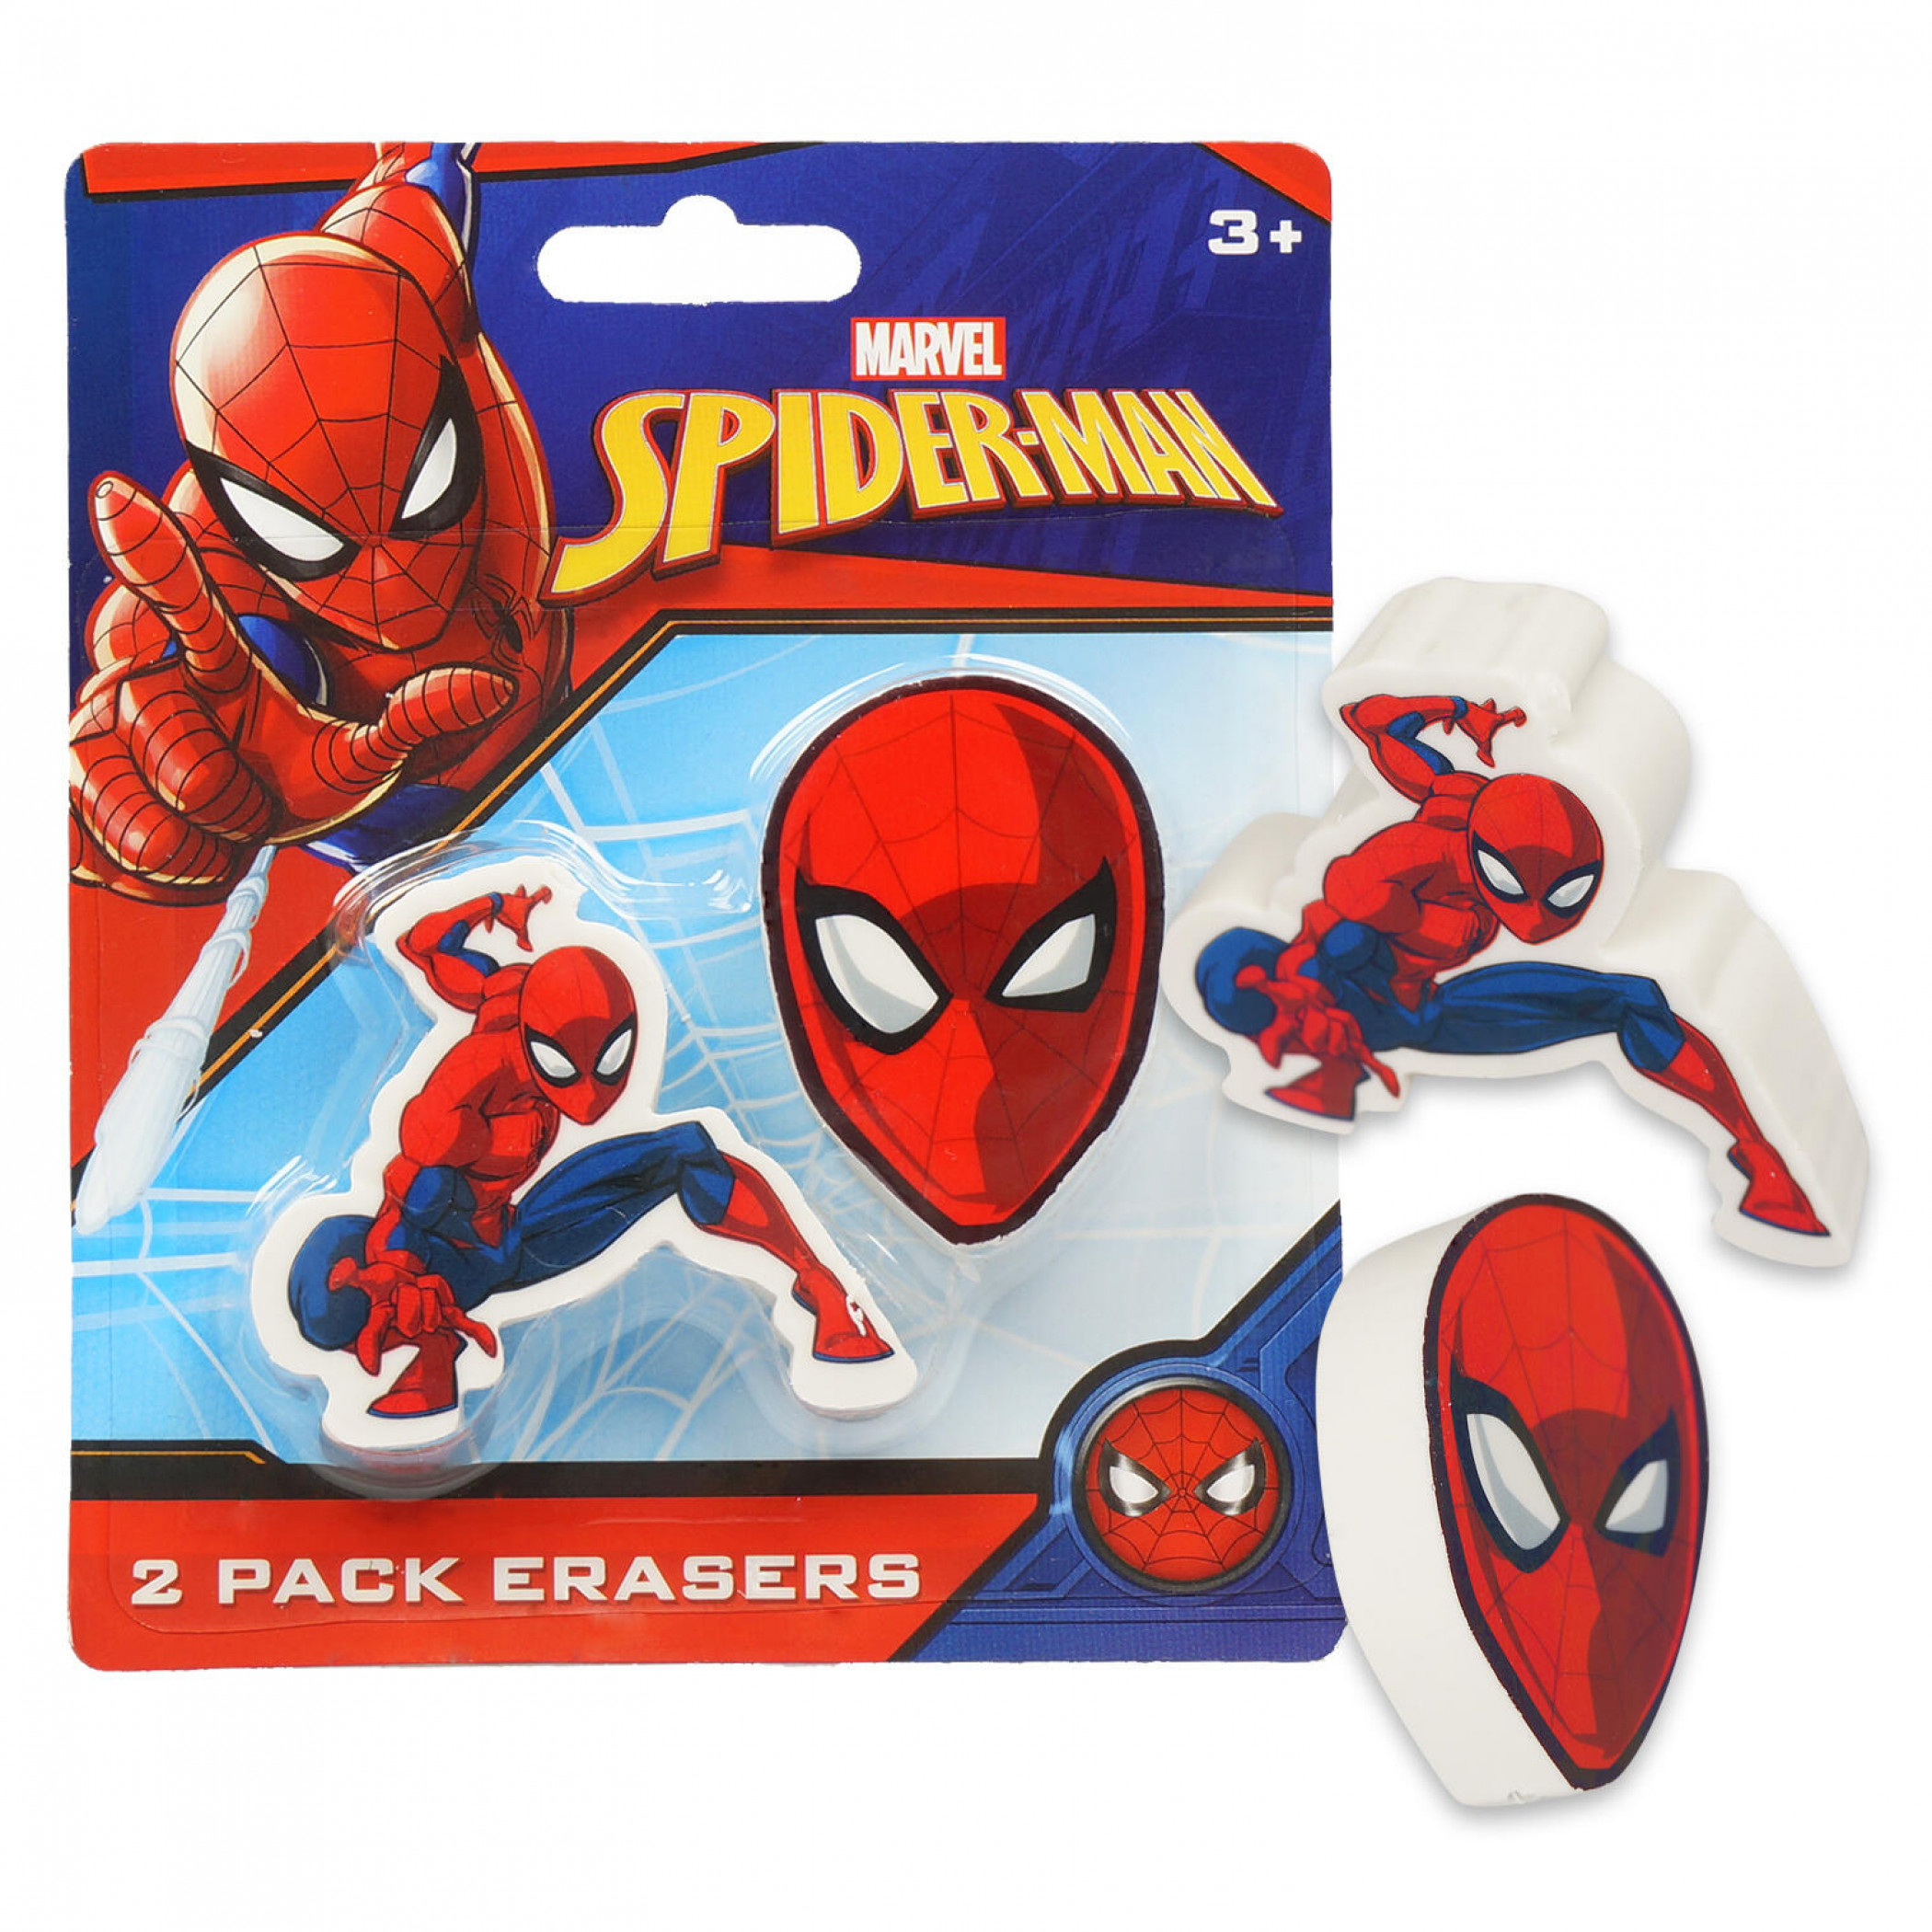 Spider-Man 2-Pack Erasers